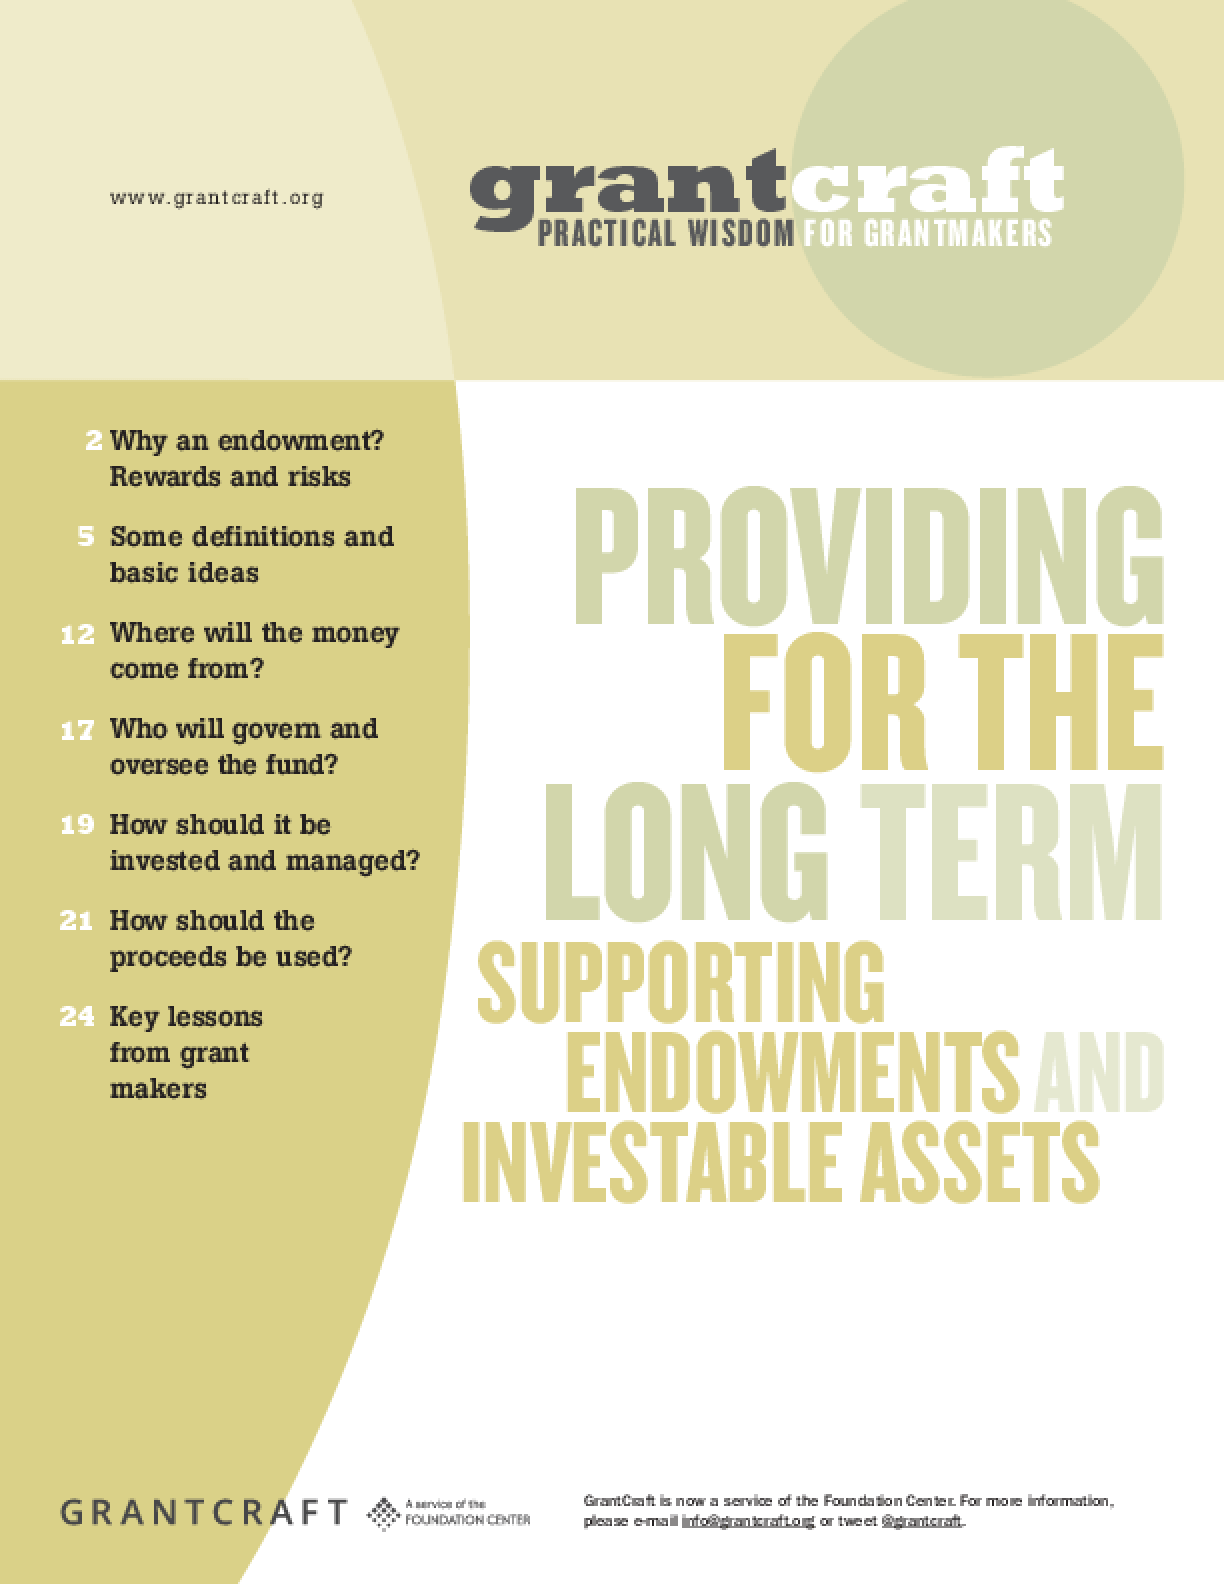 Providing for the Long Term: Supporting Endowments and Investable Assets